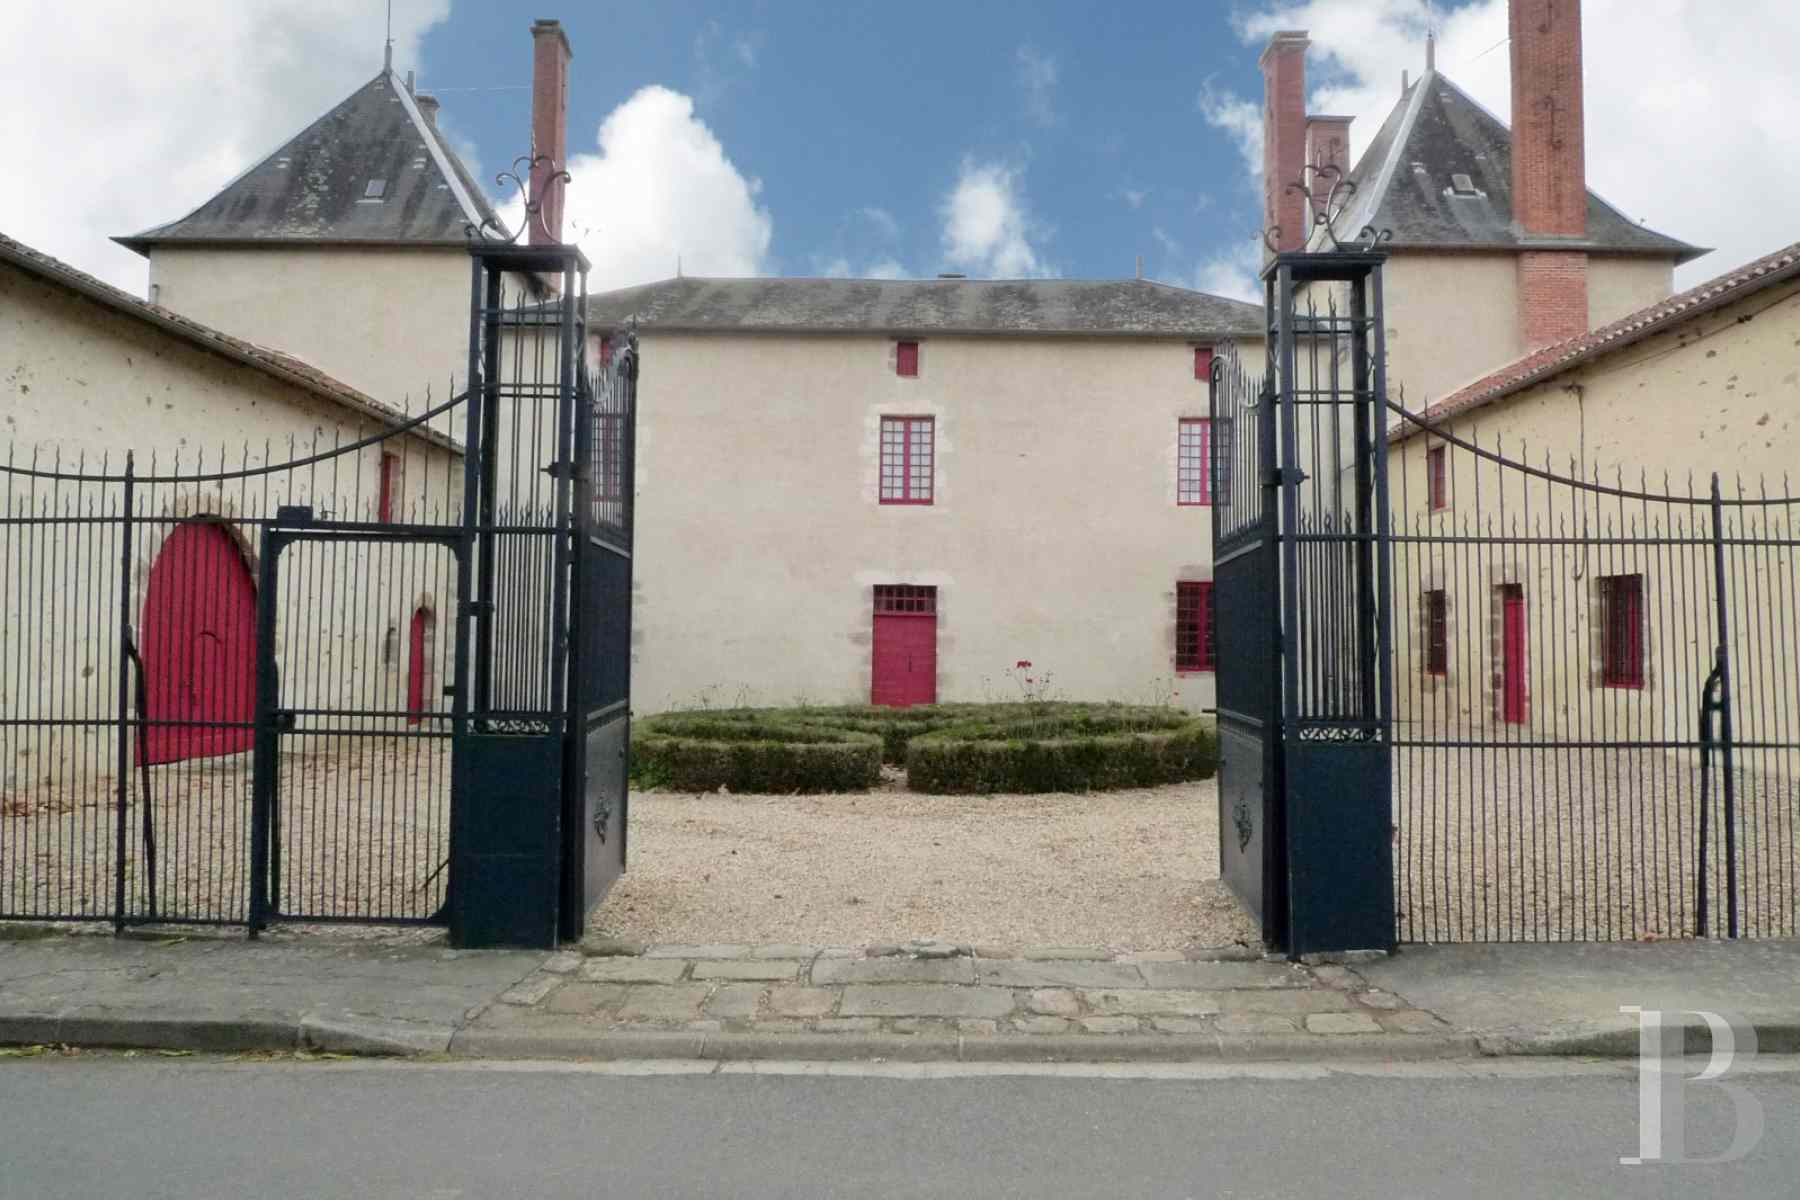 France mansions for sale poitou charentes dwelling 17th - 1 zoom